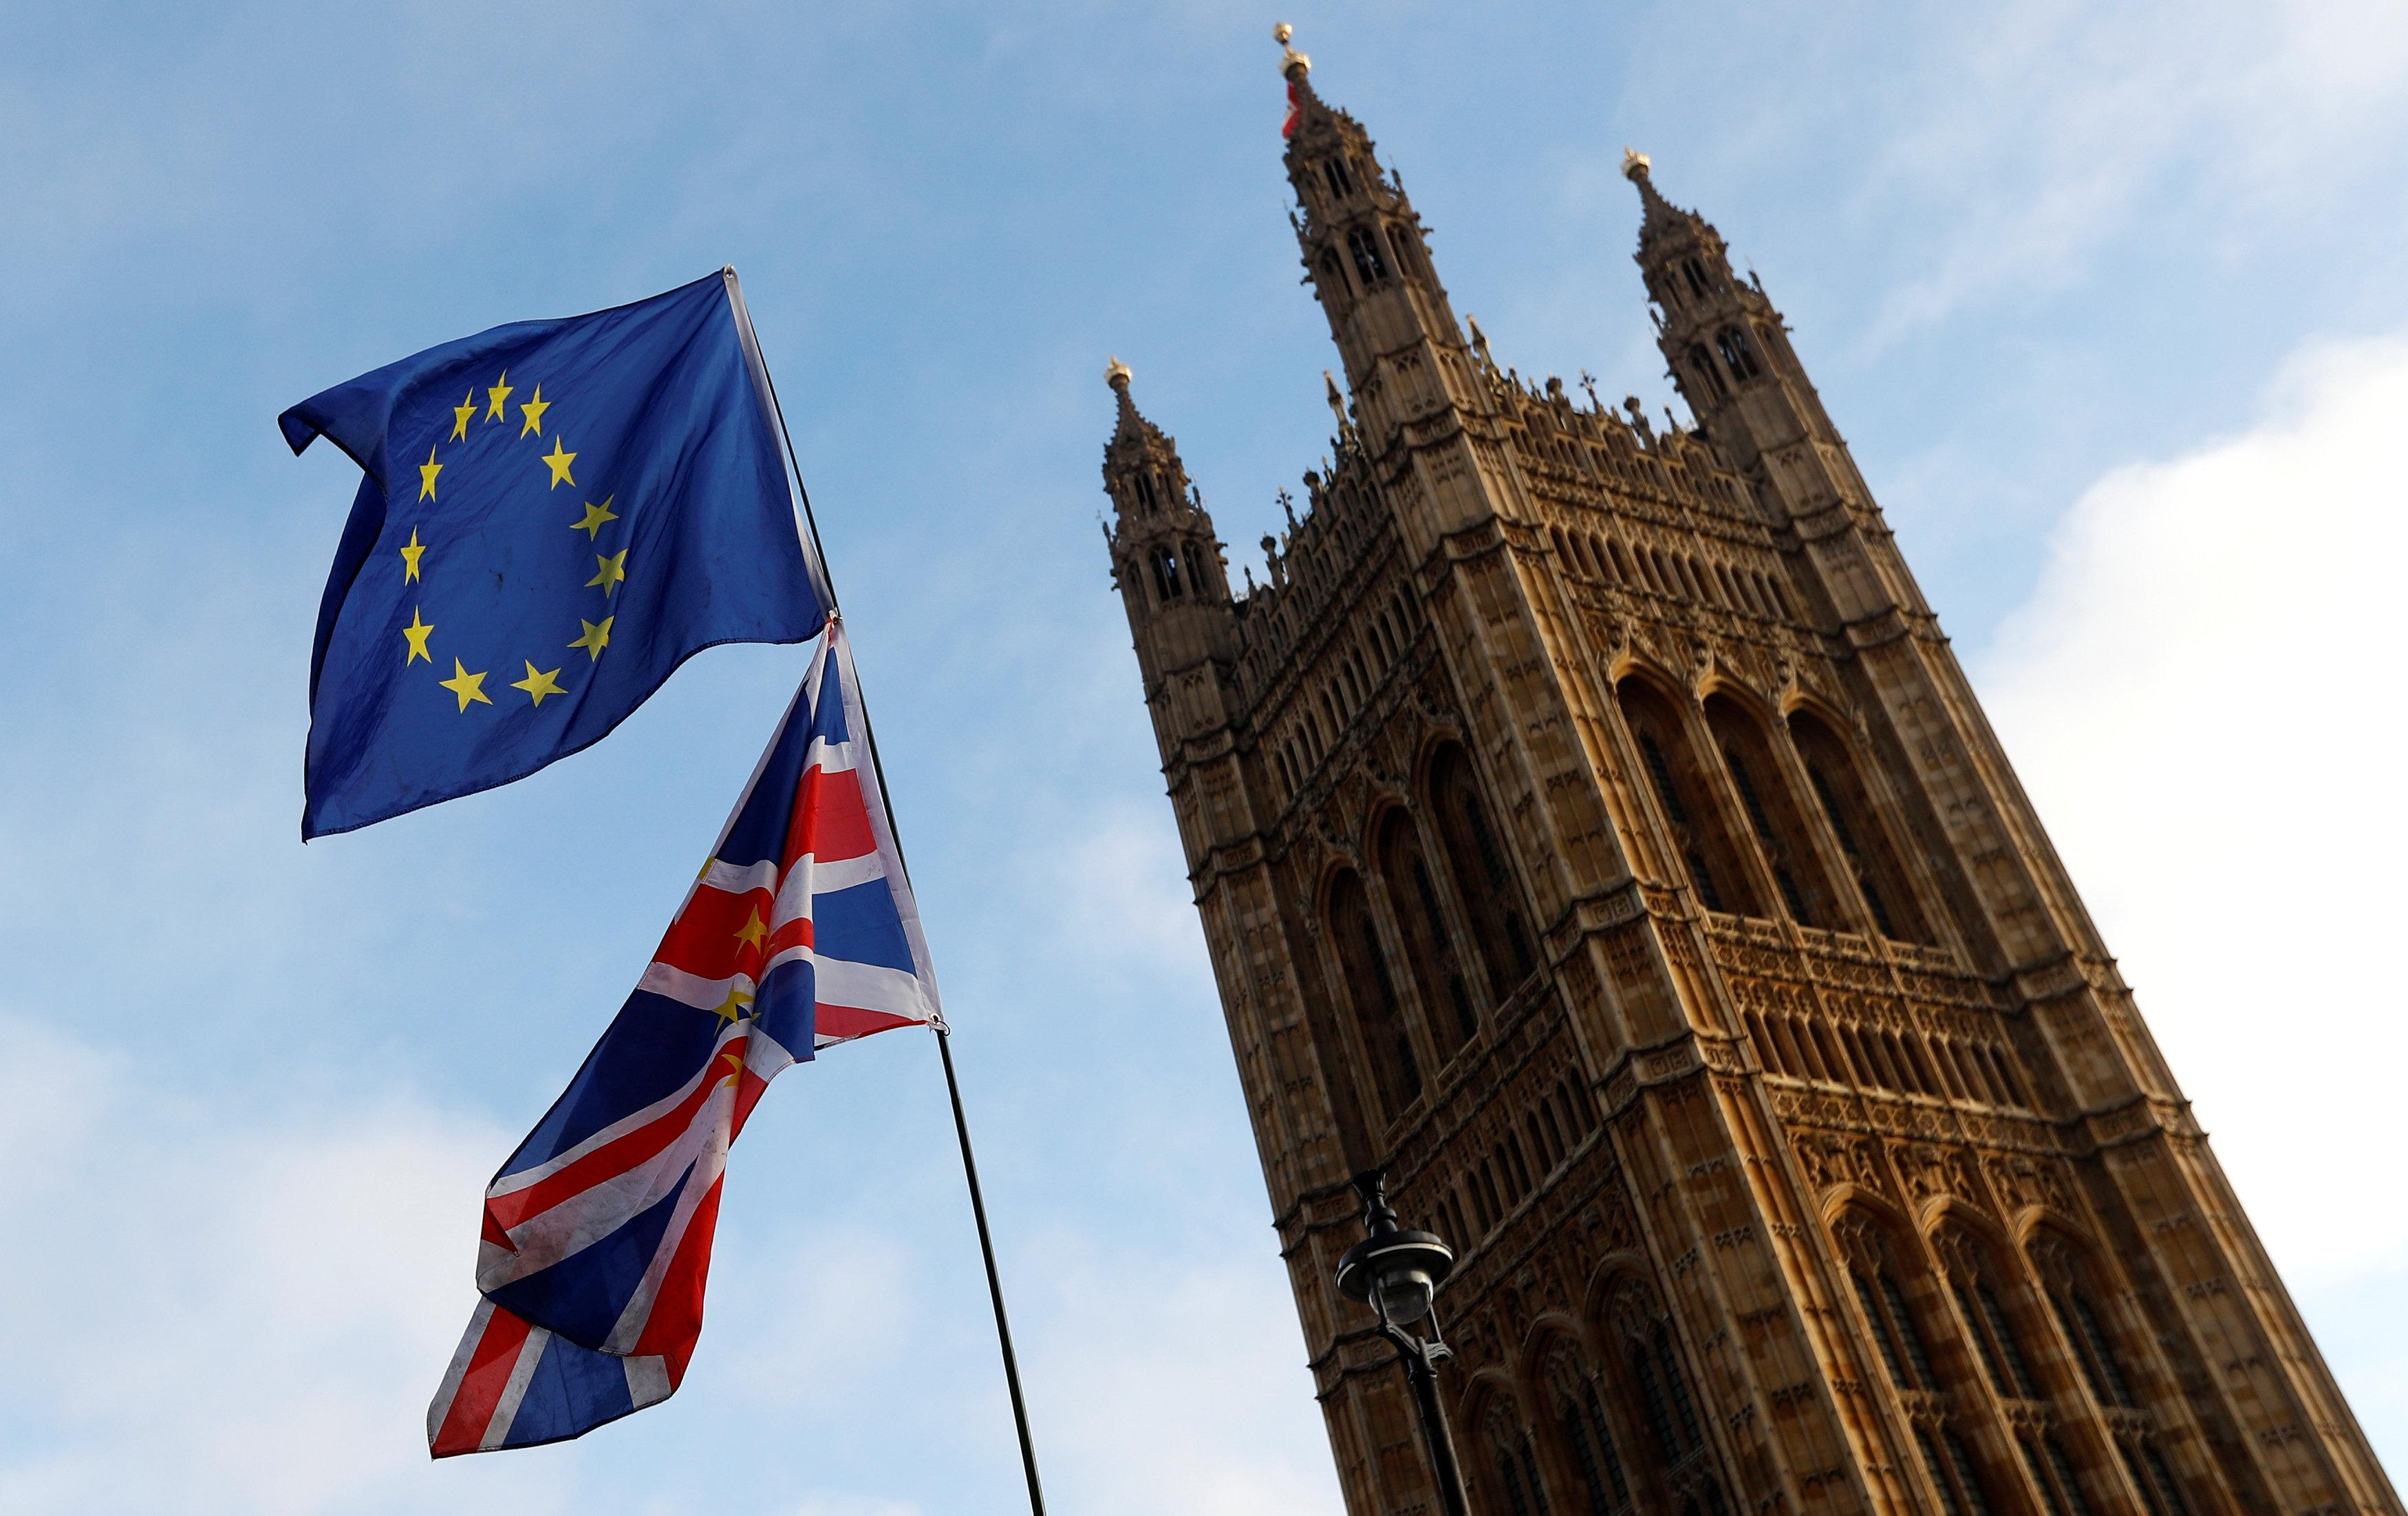 Britain's lower house of parliament approves bill to sever EU ties